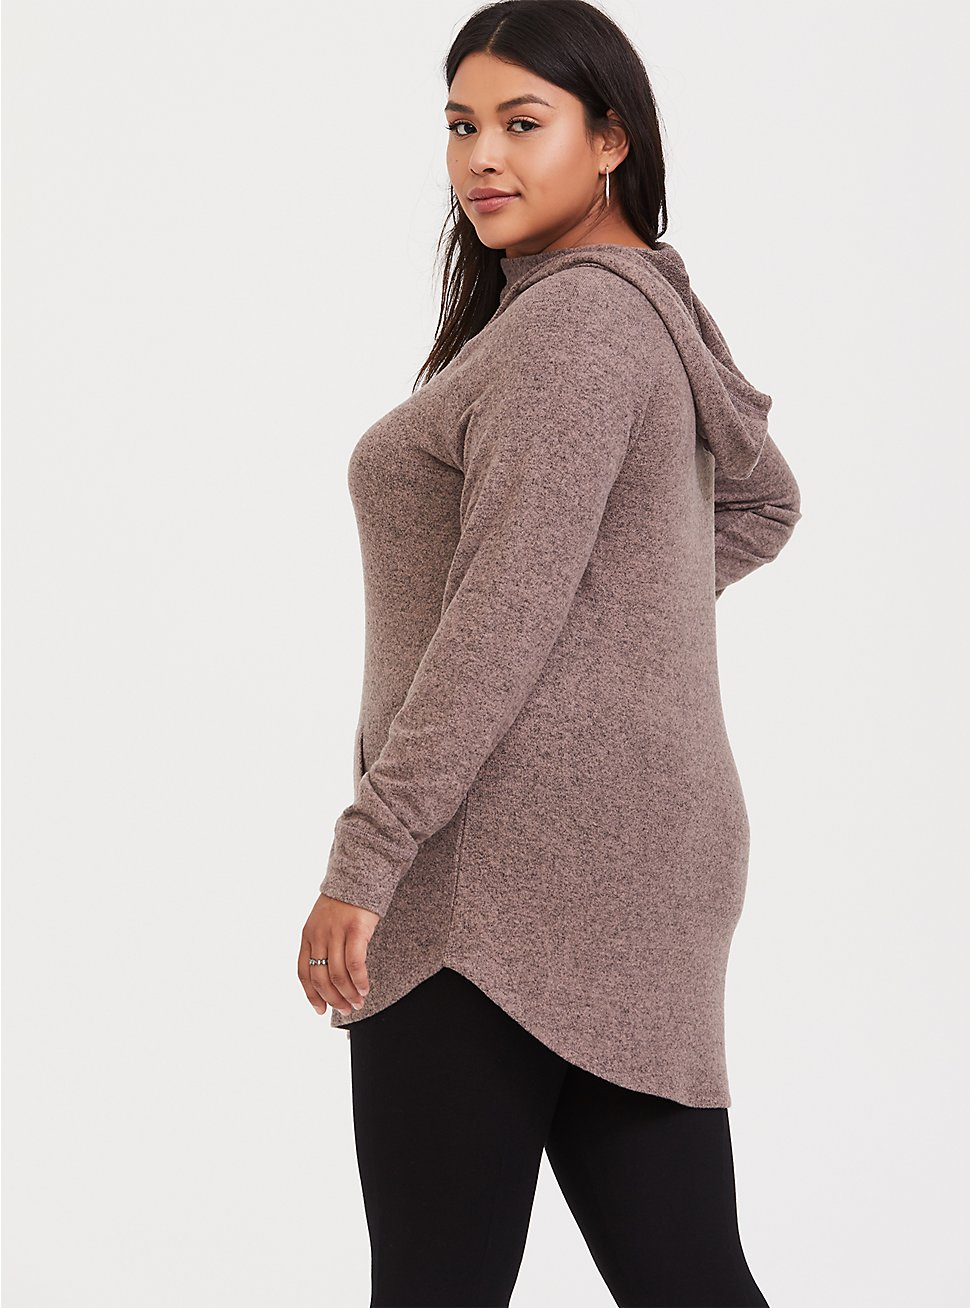 Super Soft Plush Taupe Cowl Neck Hoodie, WARMED STONE, hi-res